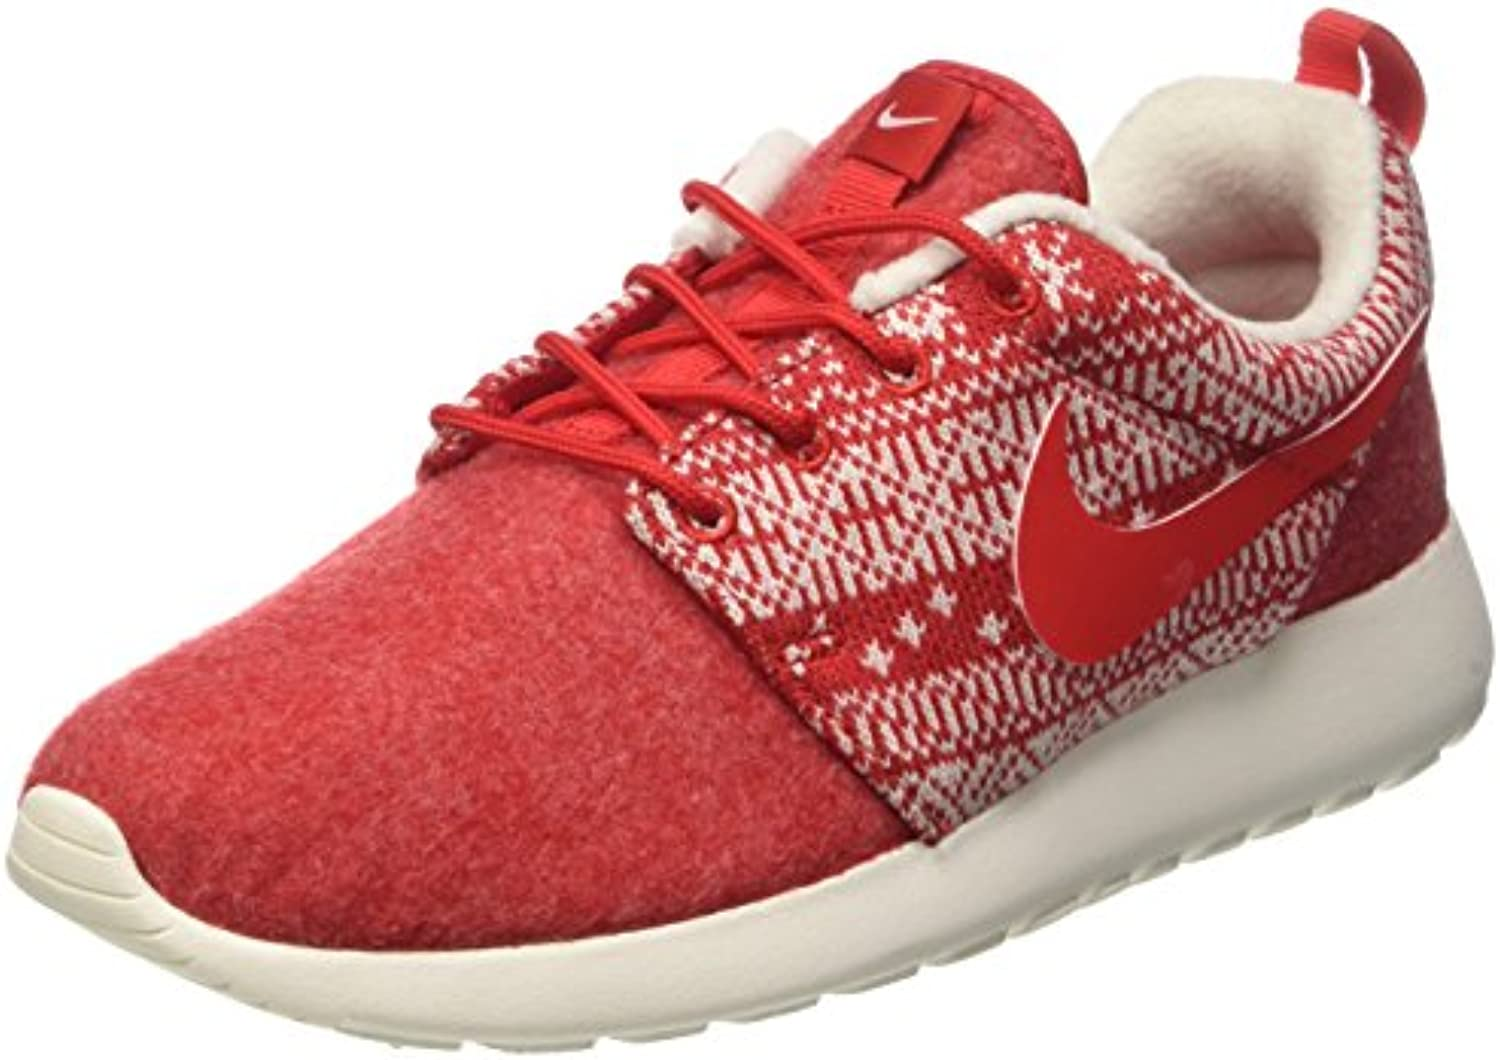 Nike Wmns Roshe One Winter, Scarpe Sportive, Donna | Outlet  | Uomo/Donne Scarpa